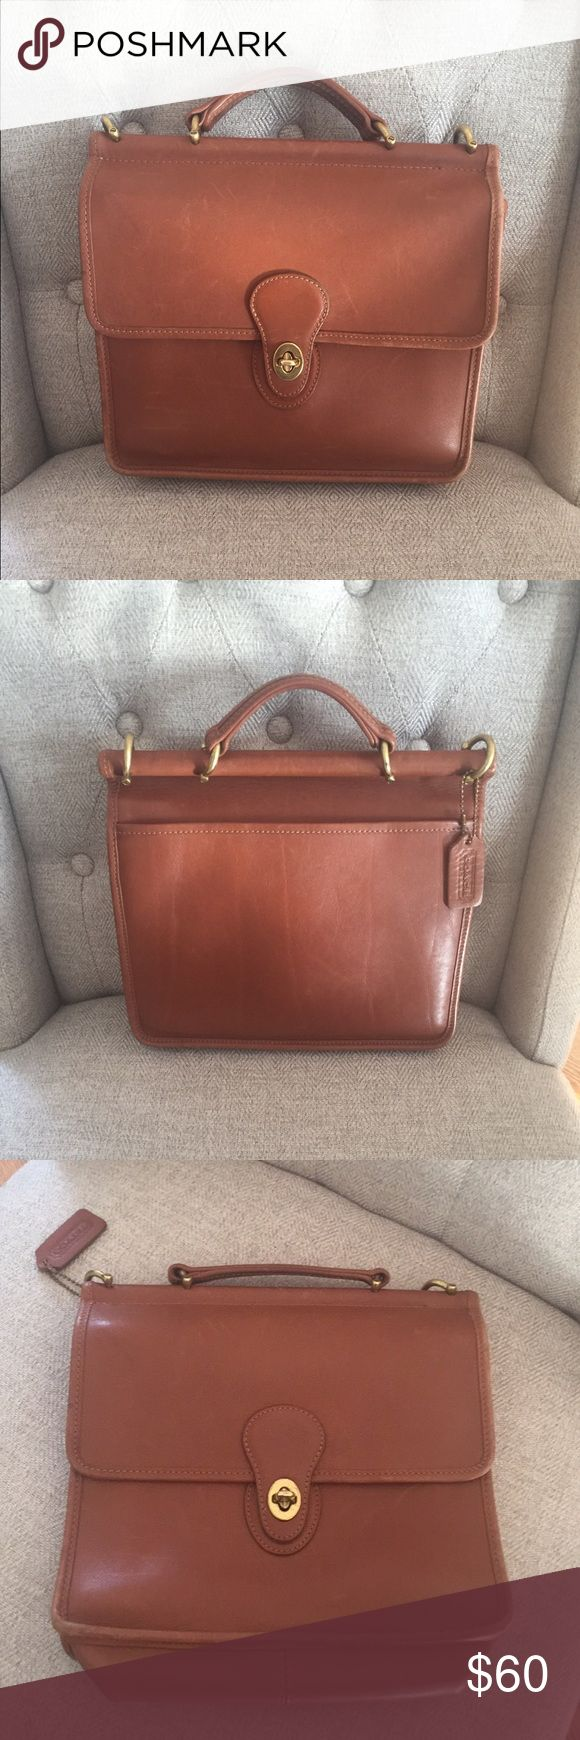 GORGEOUS VINTAGE COACH WILLIS BRIEFCASE 🌹🌹🌹🌹🌹 Beautiful, vintage COACH dark tan small briefcase/bag! So much character!! Perfect to tote small notebook, fits iPad or whatever you want! Has a small tear in the inside as pictured but in great condition! Does not come with strap. Classic look! 🌹🌹🌹🌹🌹🌹🌹🌹🌹🌹🌹🌹🌹🌹🌹🌹🌹🌹🌹🌹🌹🌹🌹🌹 Coach Bags Satchels